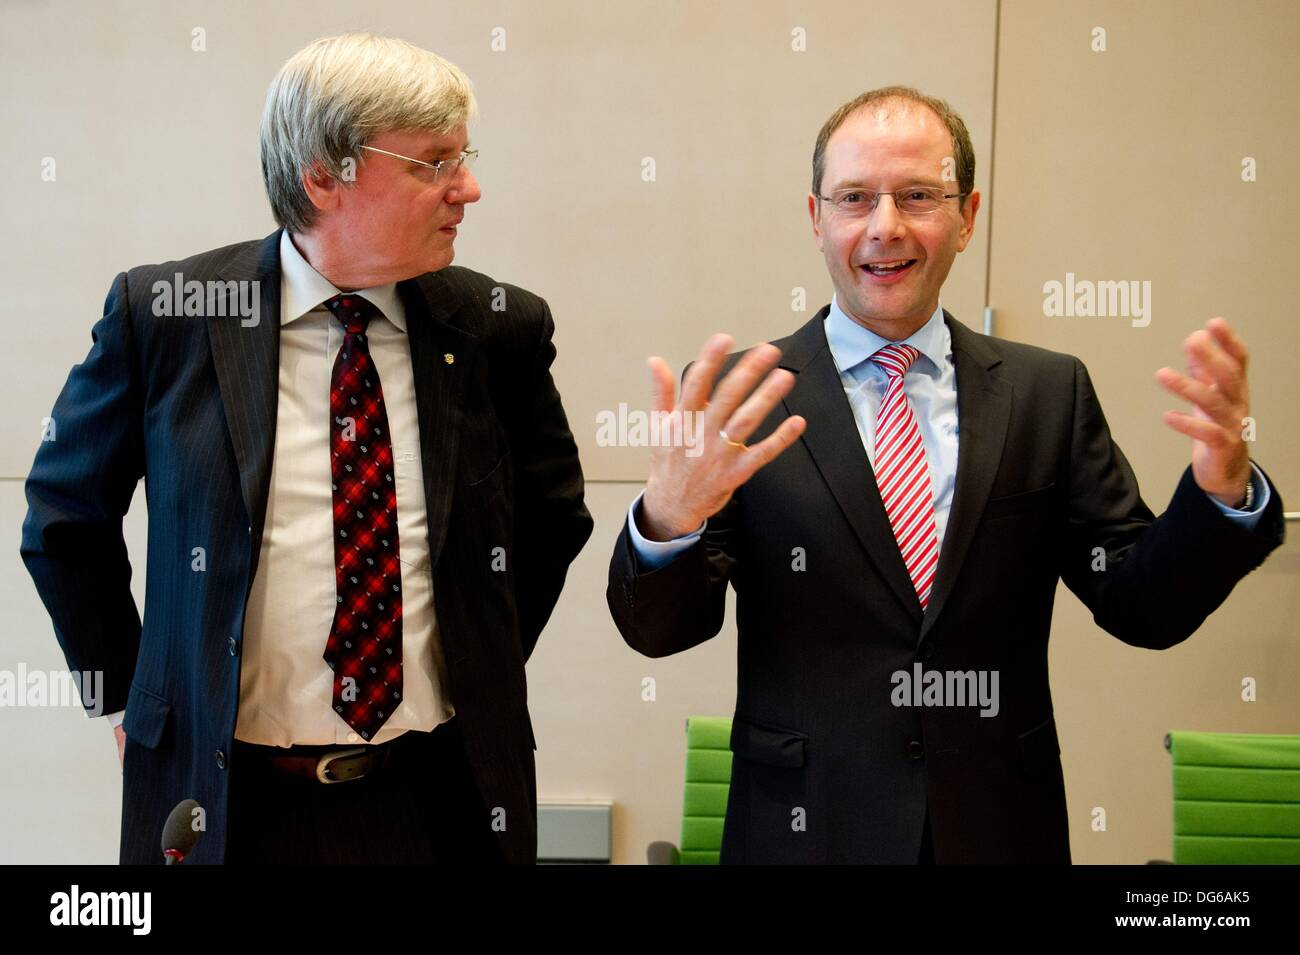 Dresden, Germany. 15th Oct, 2013. Chairman of the Saxon committee of the interior, Rolf Seidel (L), and Saxony's Minister of the Interior Markus Ulbig (CDU) arrive at a special meeting of the Saxon committee of the interior at the Saxon state parliament in Dresden, Germany, 15 October 2013. The special meeting was about the violent commotion at the refugee centre in Chemnitz three weeks ago. Photo: SEBASTIAN KAHNERT/dpa/Alamy Live News - Stock Image